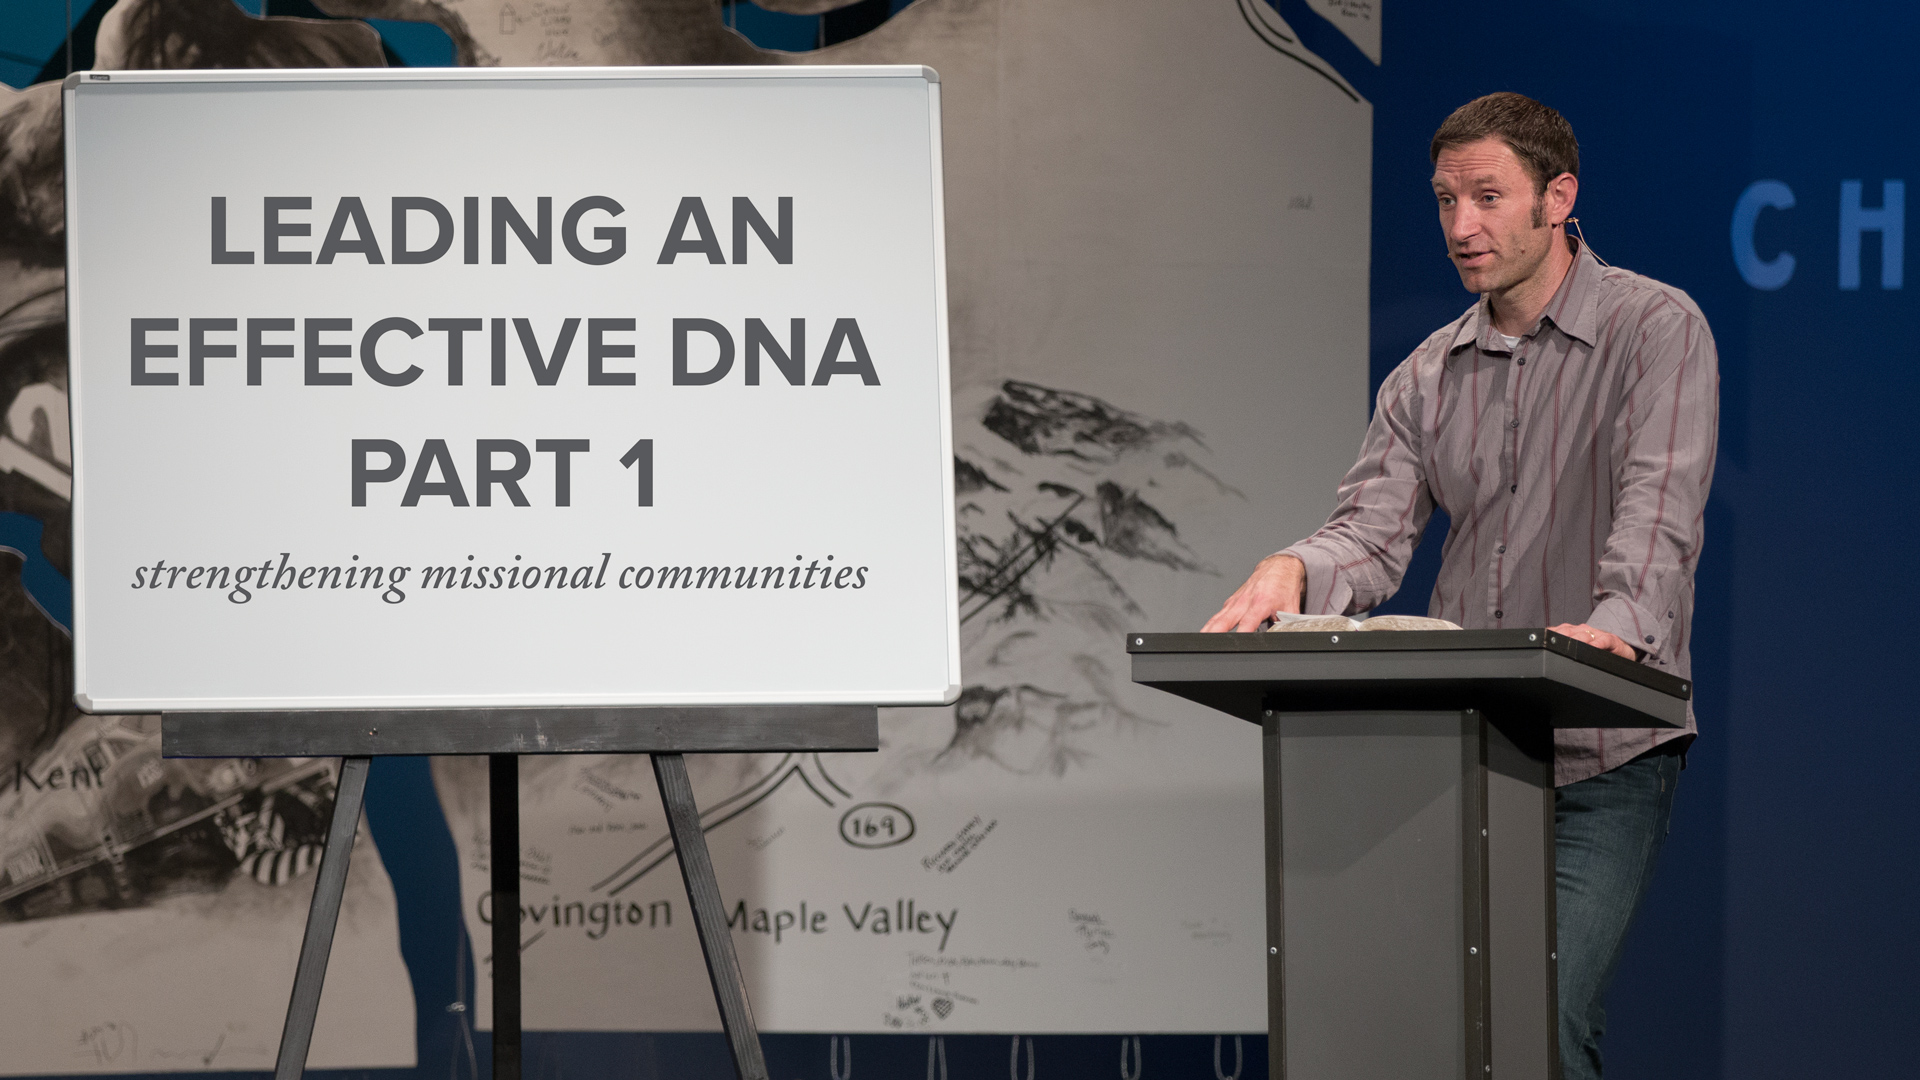 Leading an Effective DNA, Pt 1